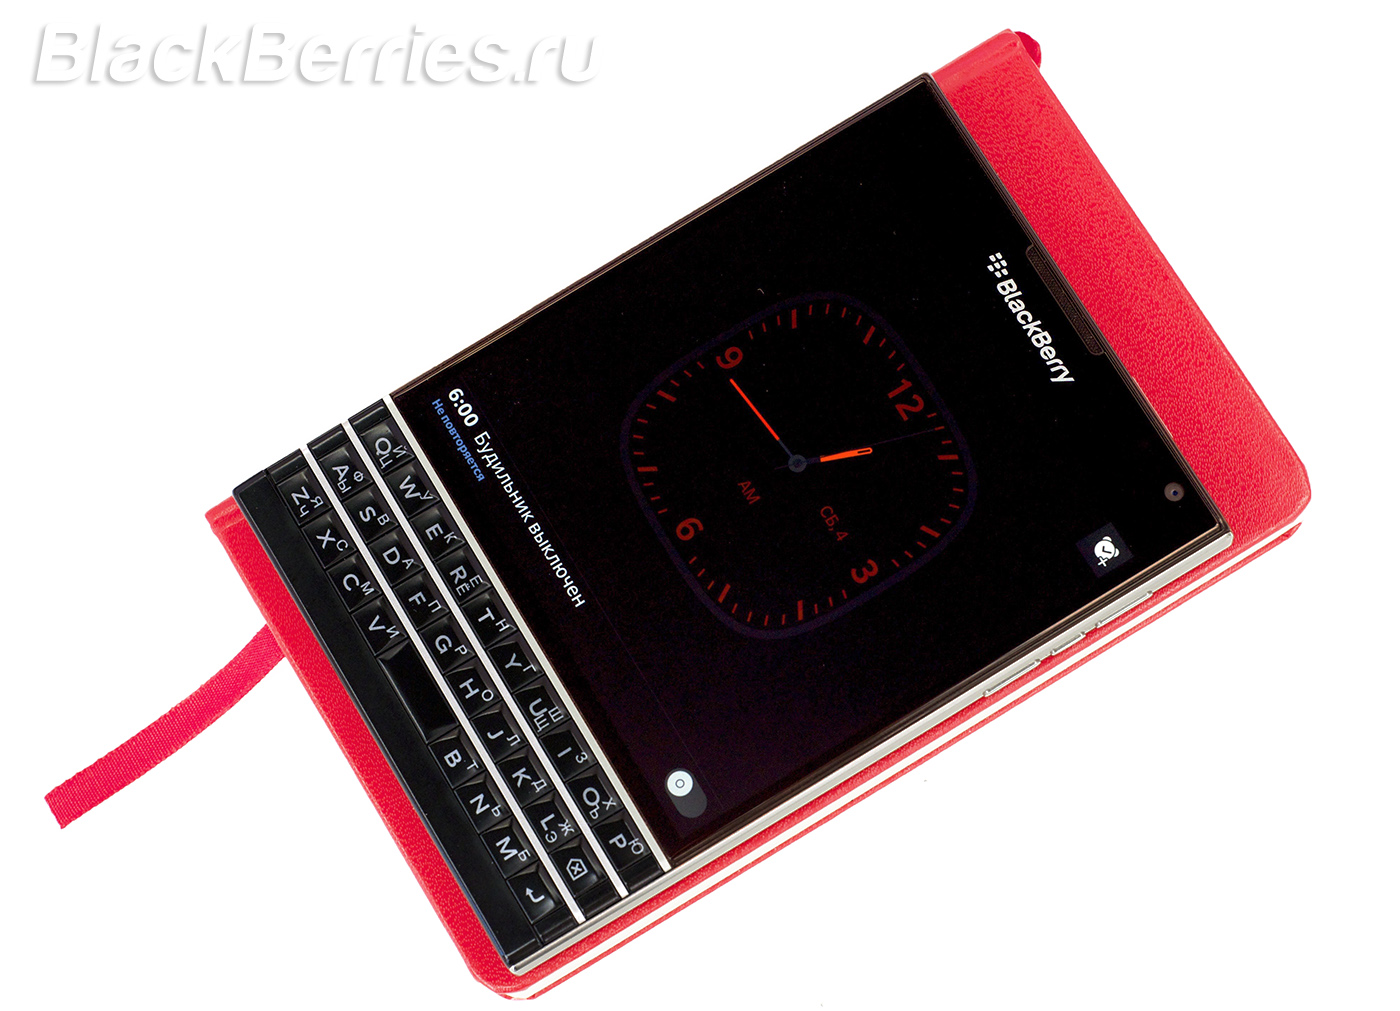 BlackBerry-Passport-Apps-05-07-05